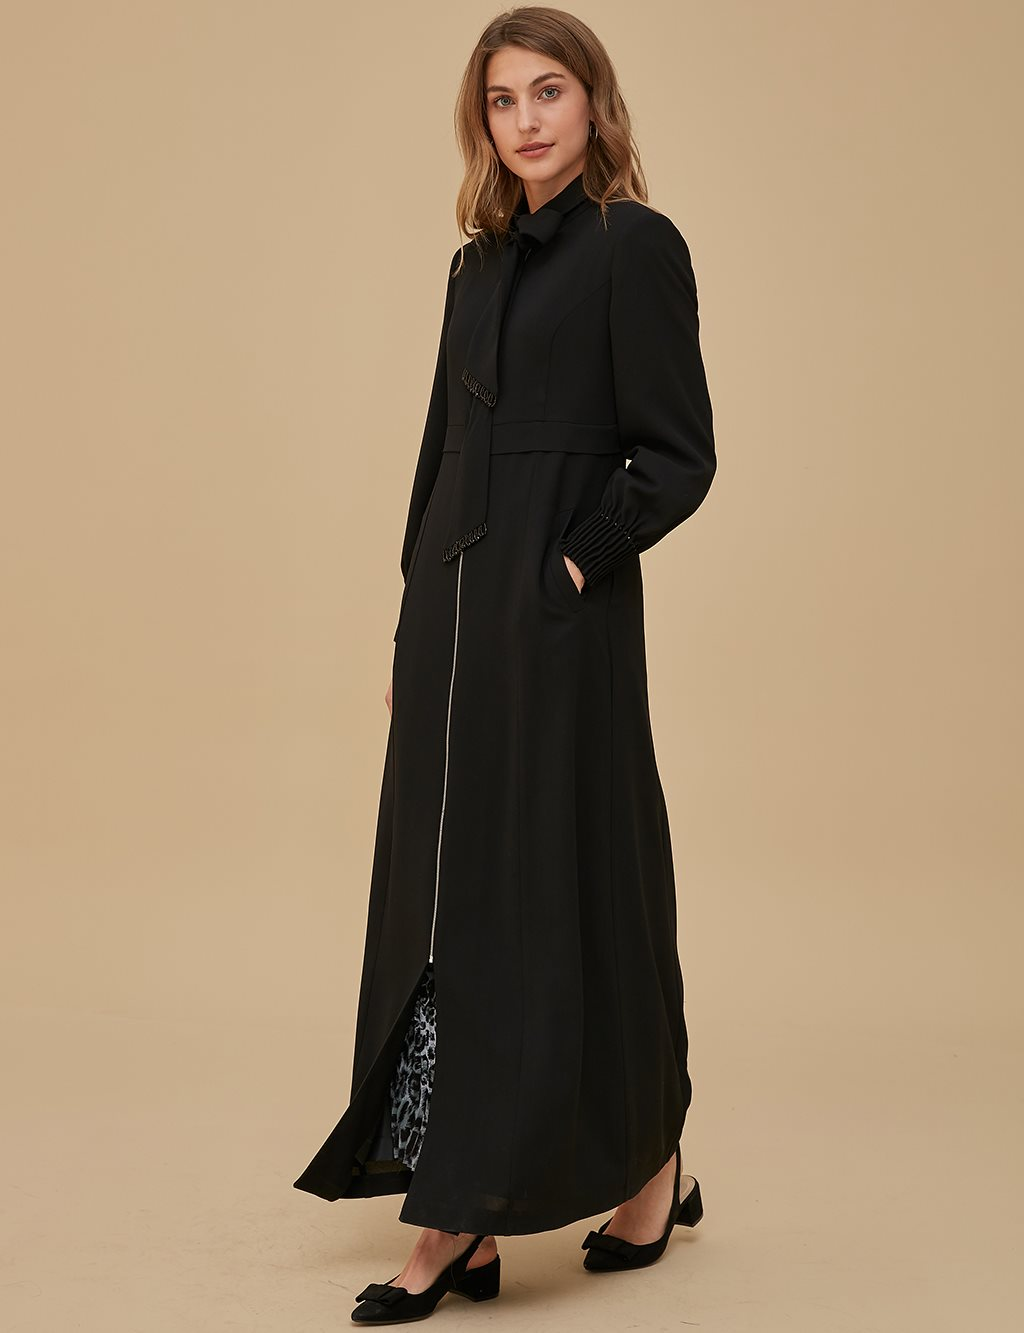 Detailed Overcoat A9 15043 Black